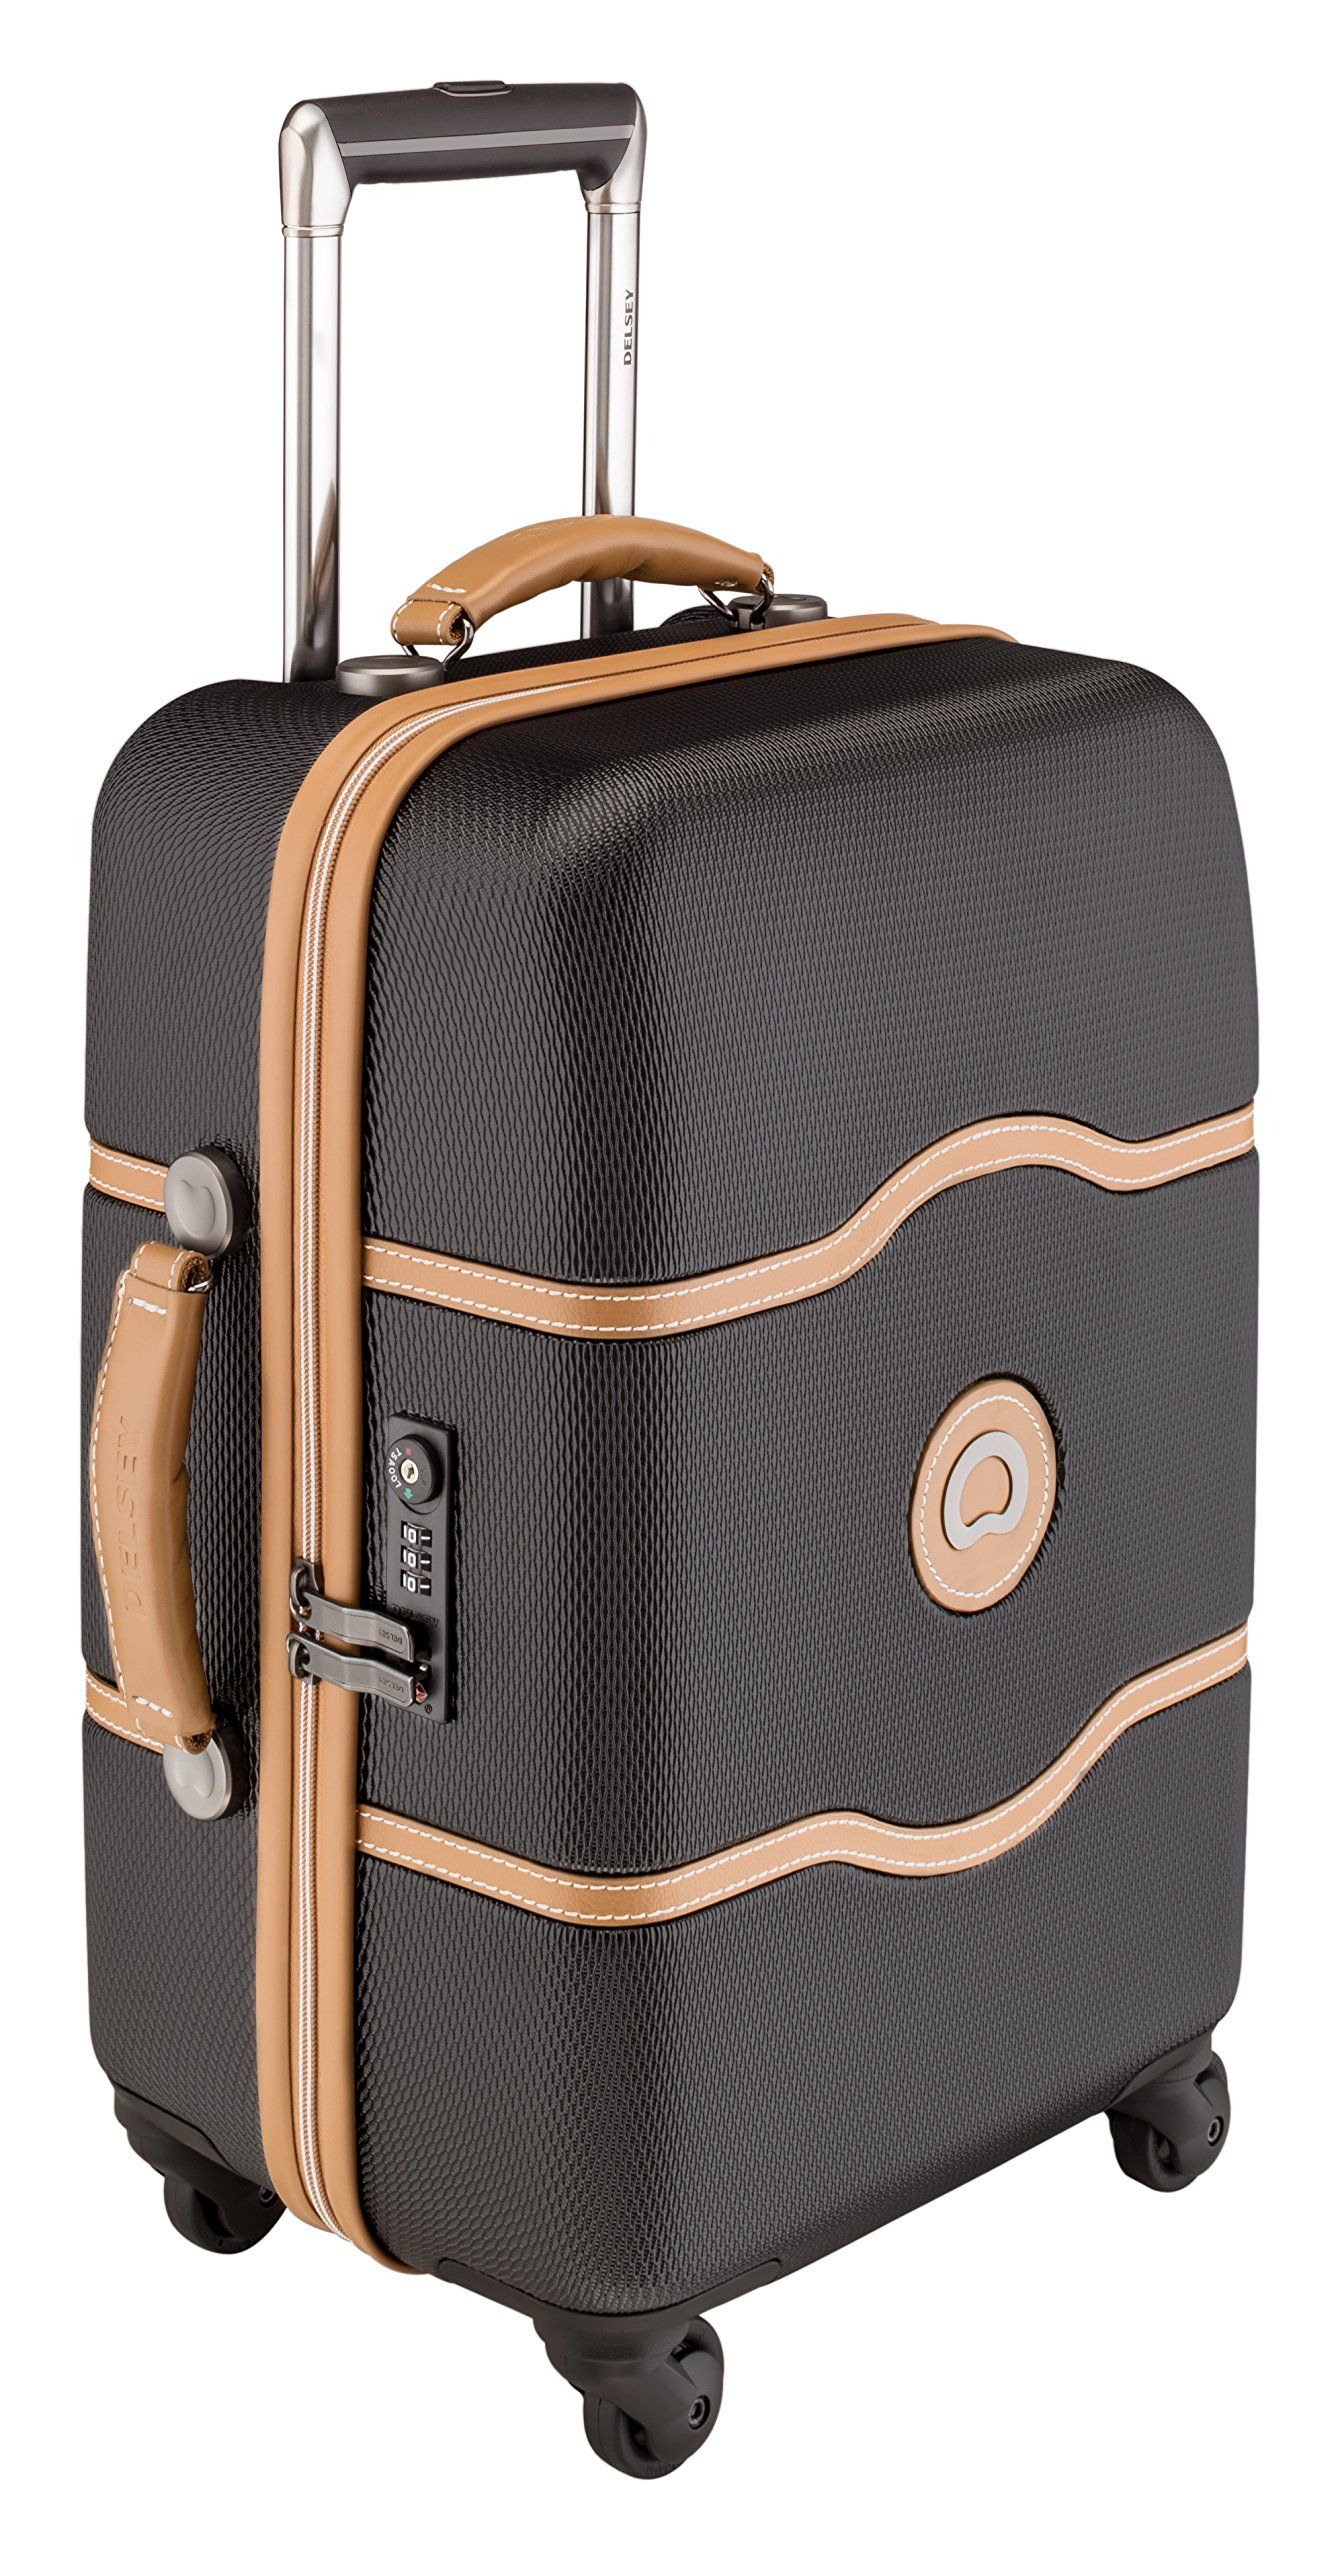 74516e829151 Delsey Luggage Chatelet 21 Inch Carry-On Spinner